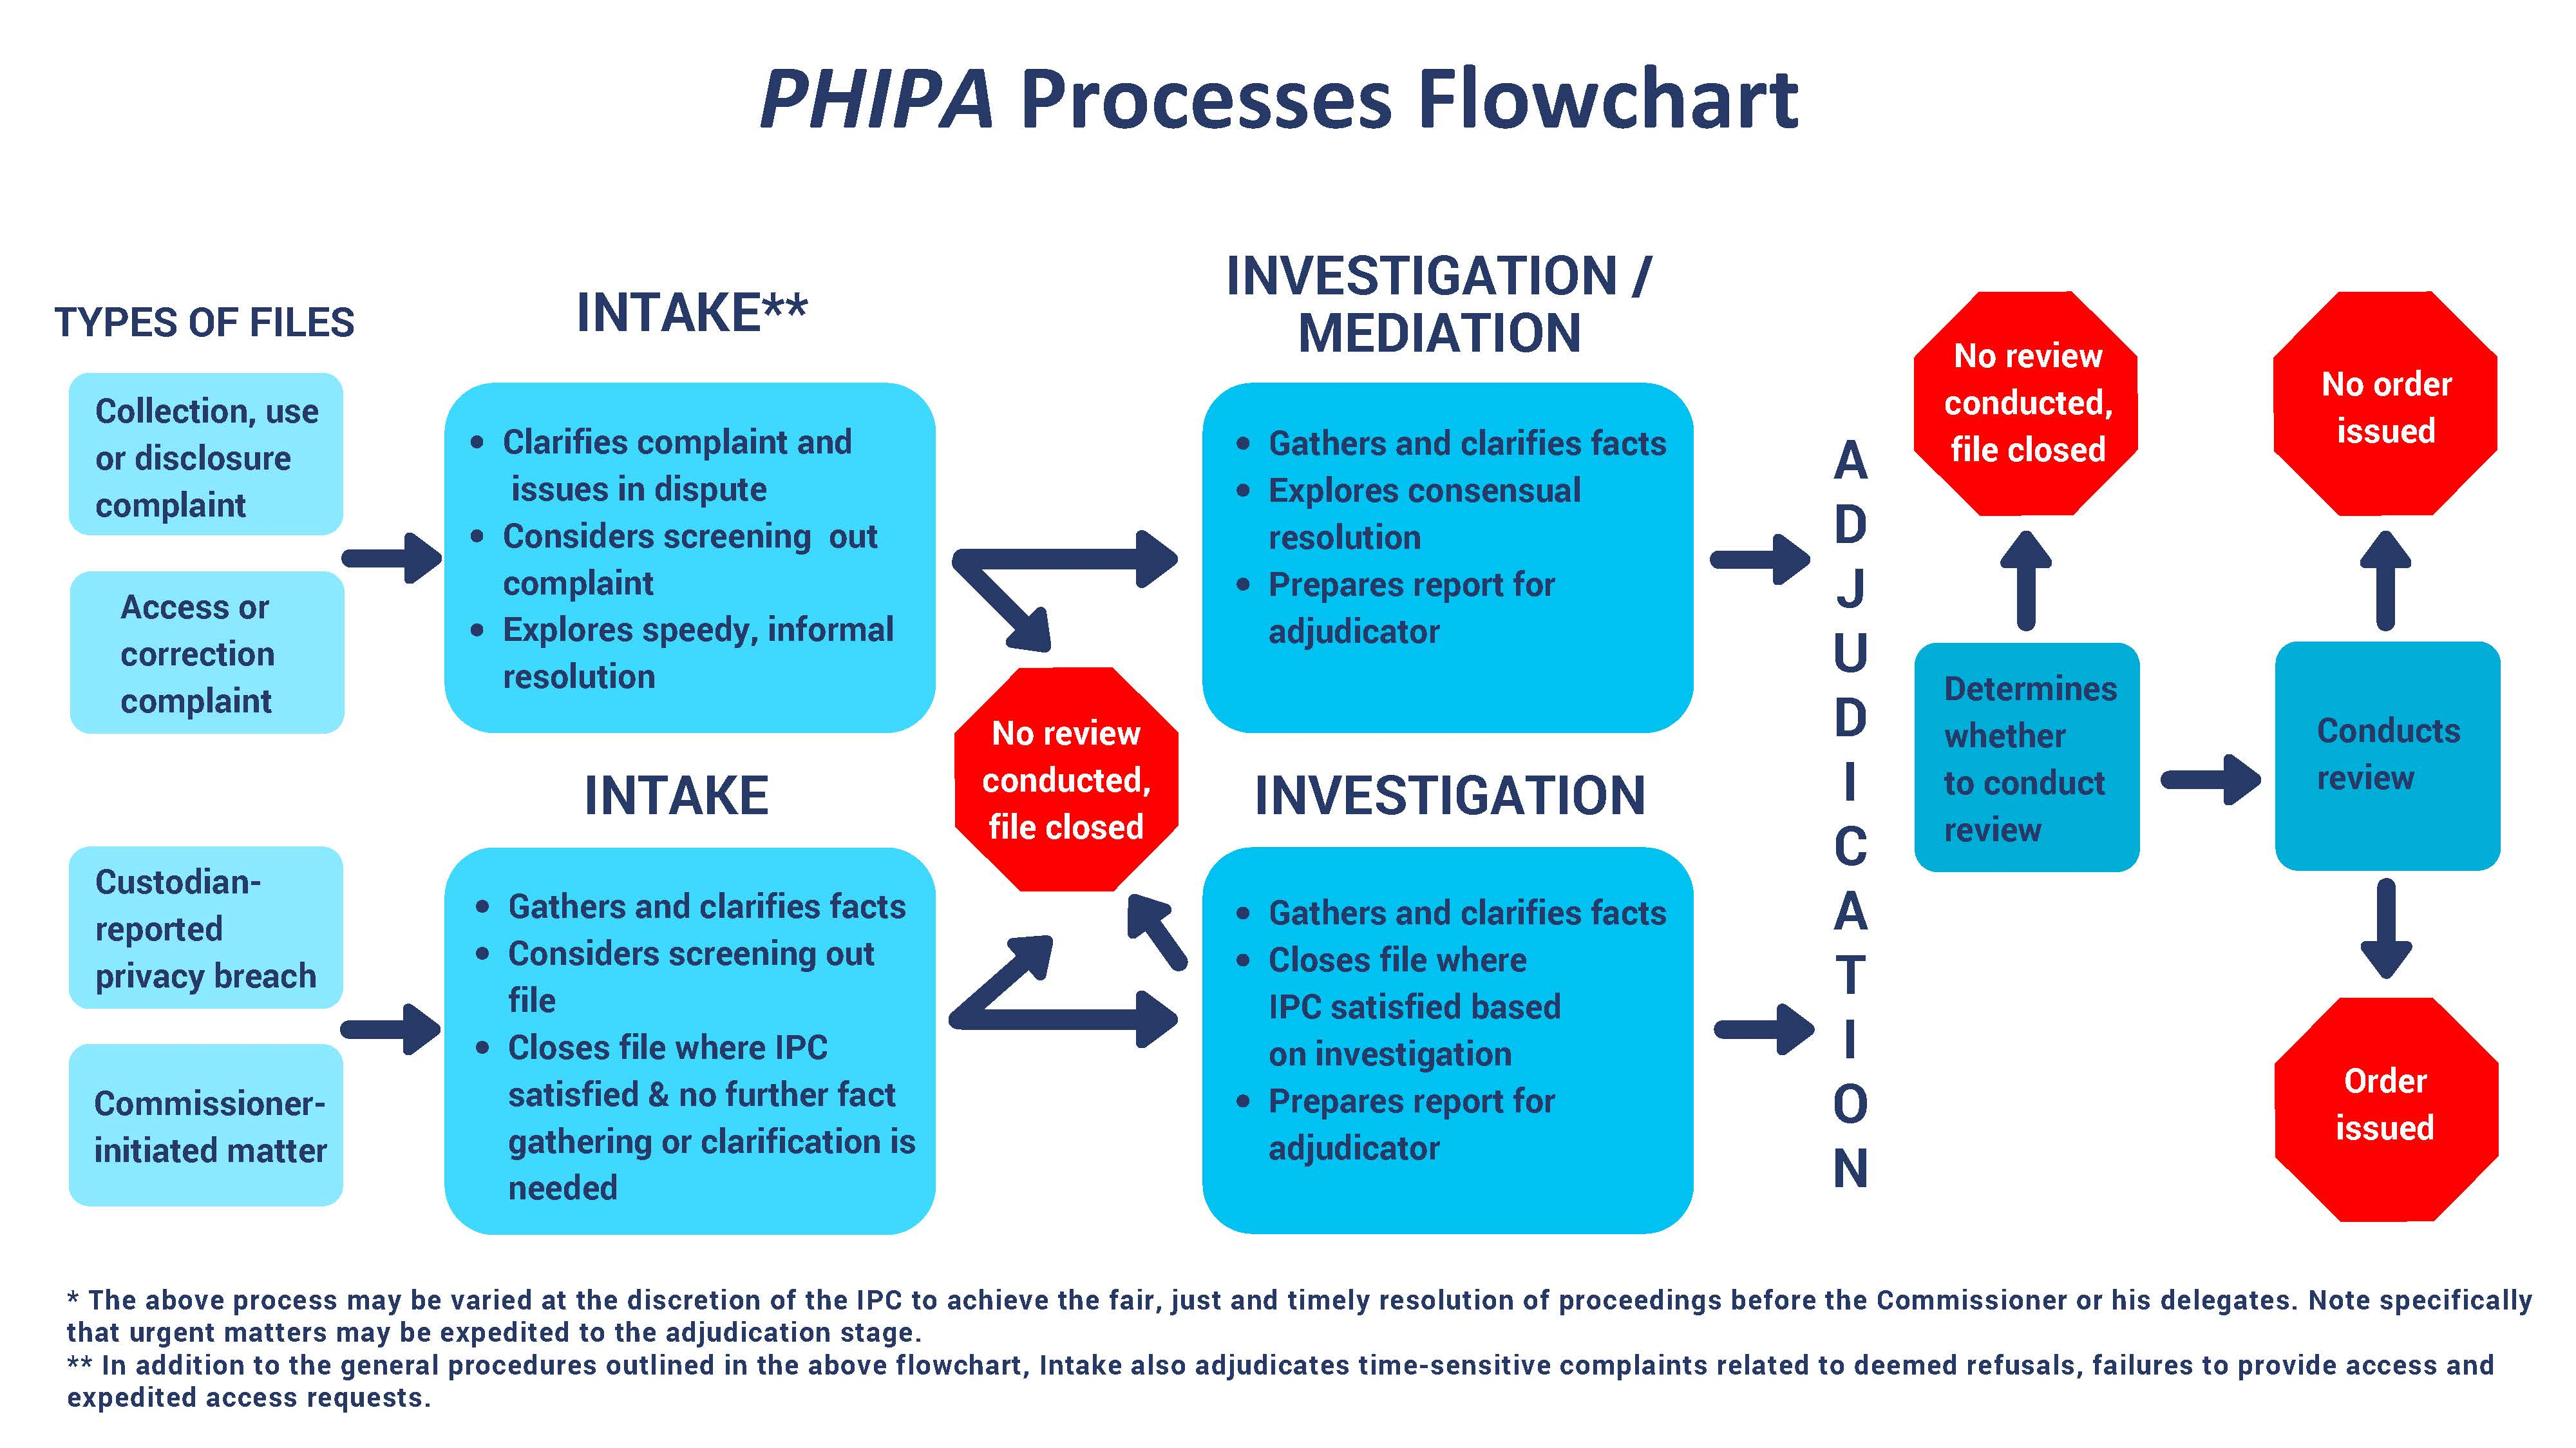 PHIPA PROCESSES FLOWCHART 2 our phipa processes ipc